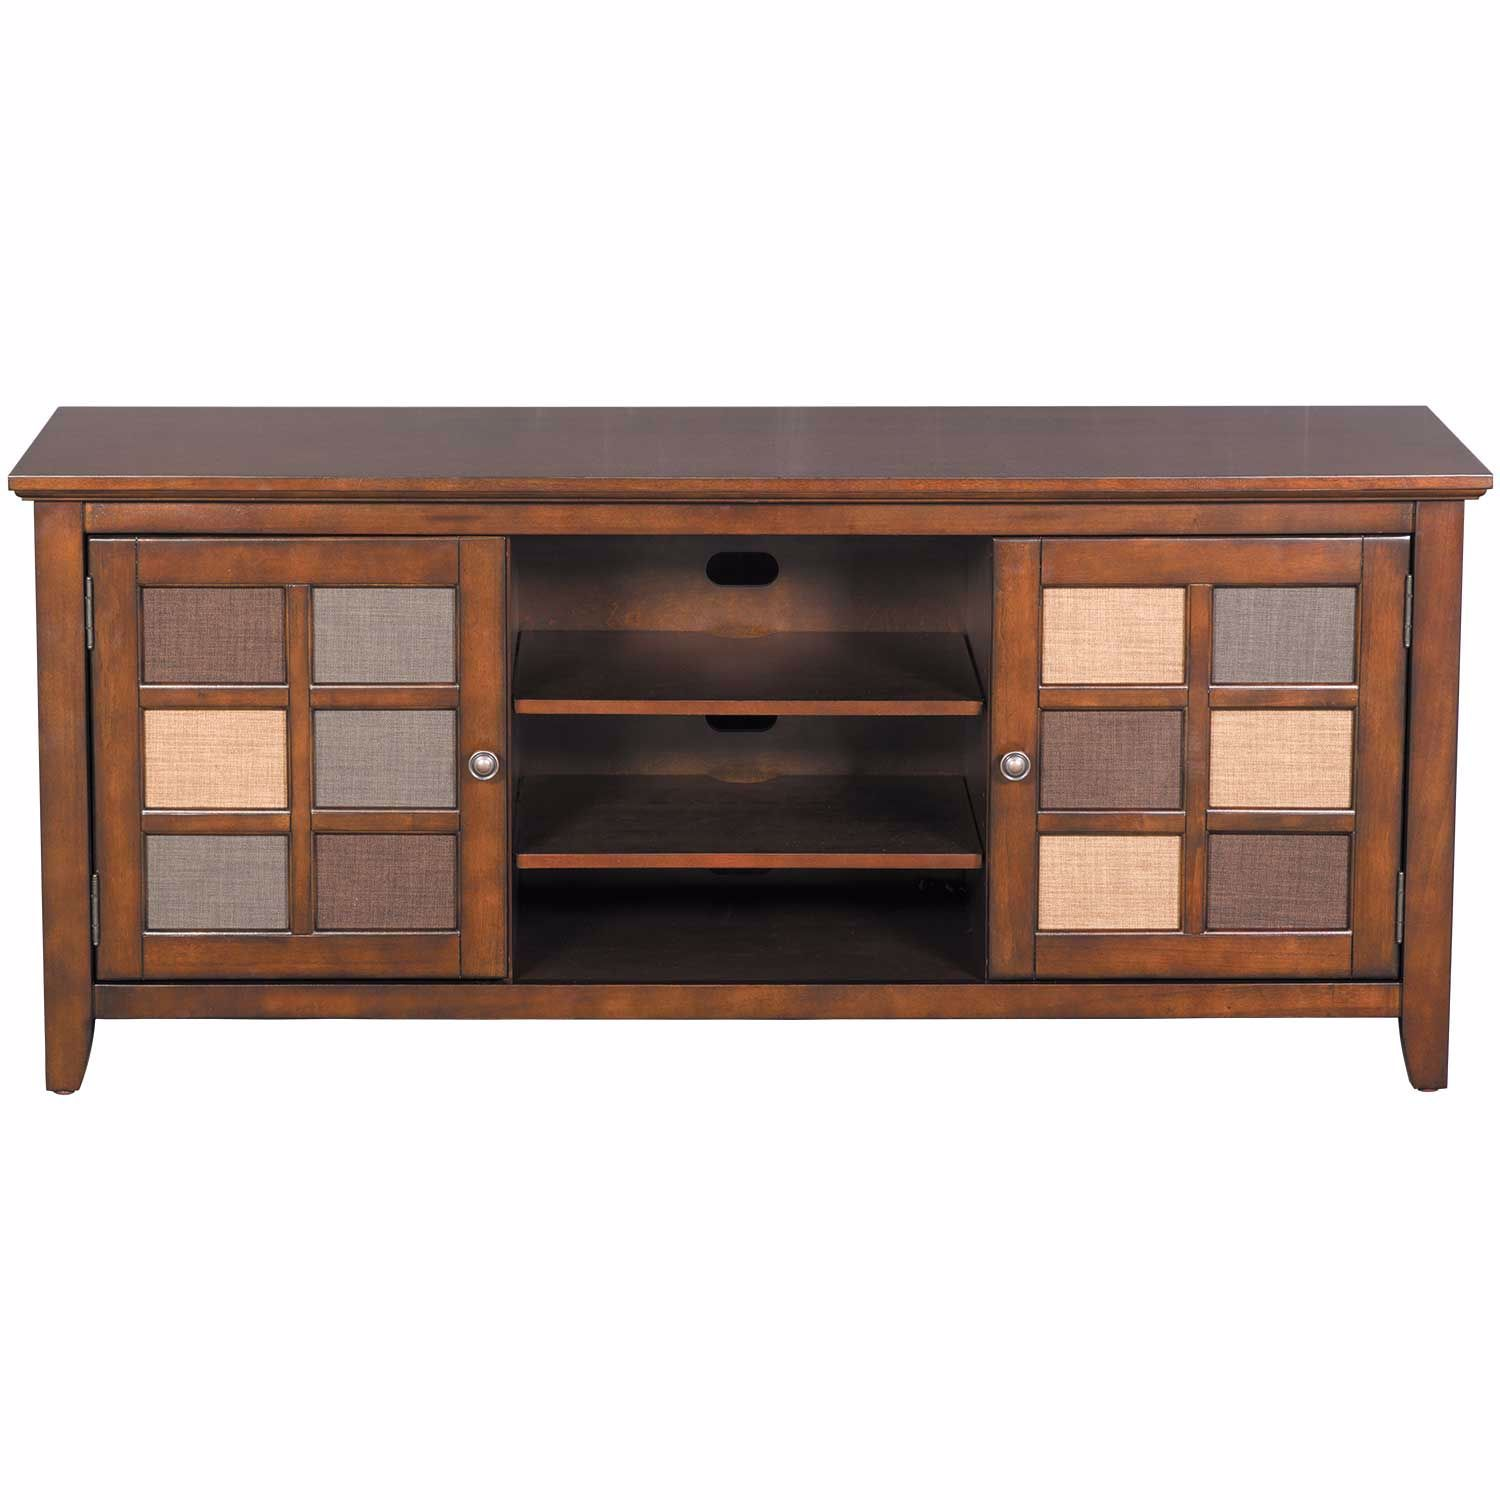 Picture of Bramley Folding TV Stand